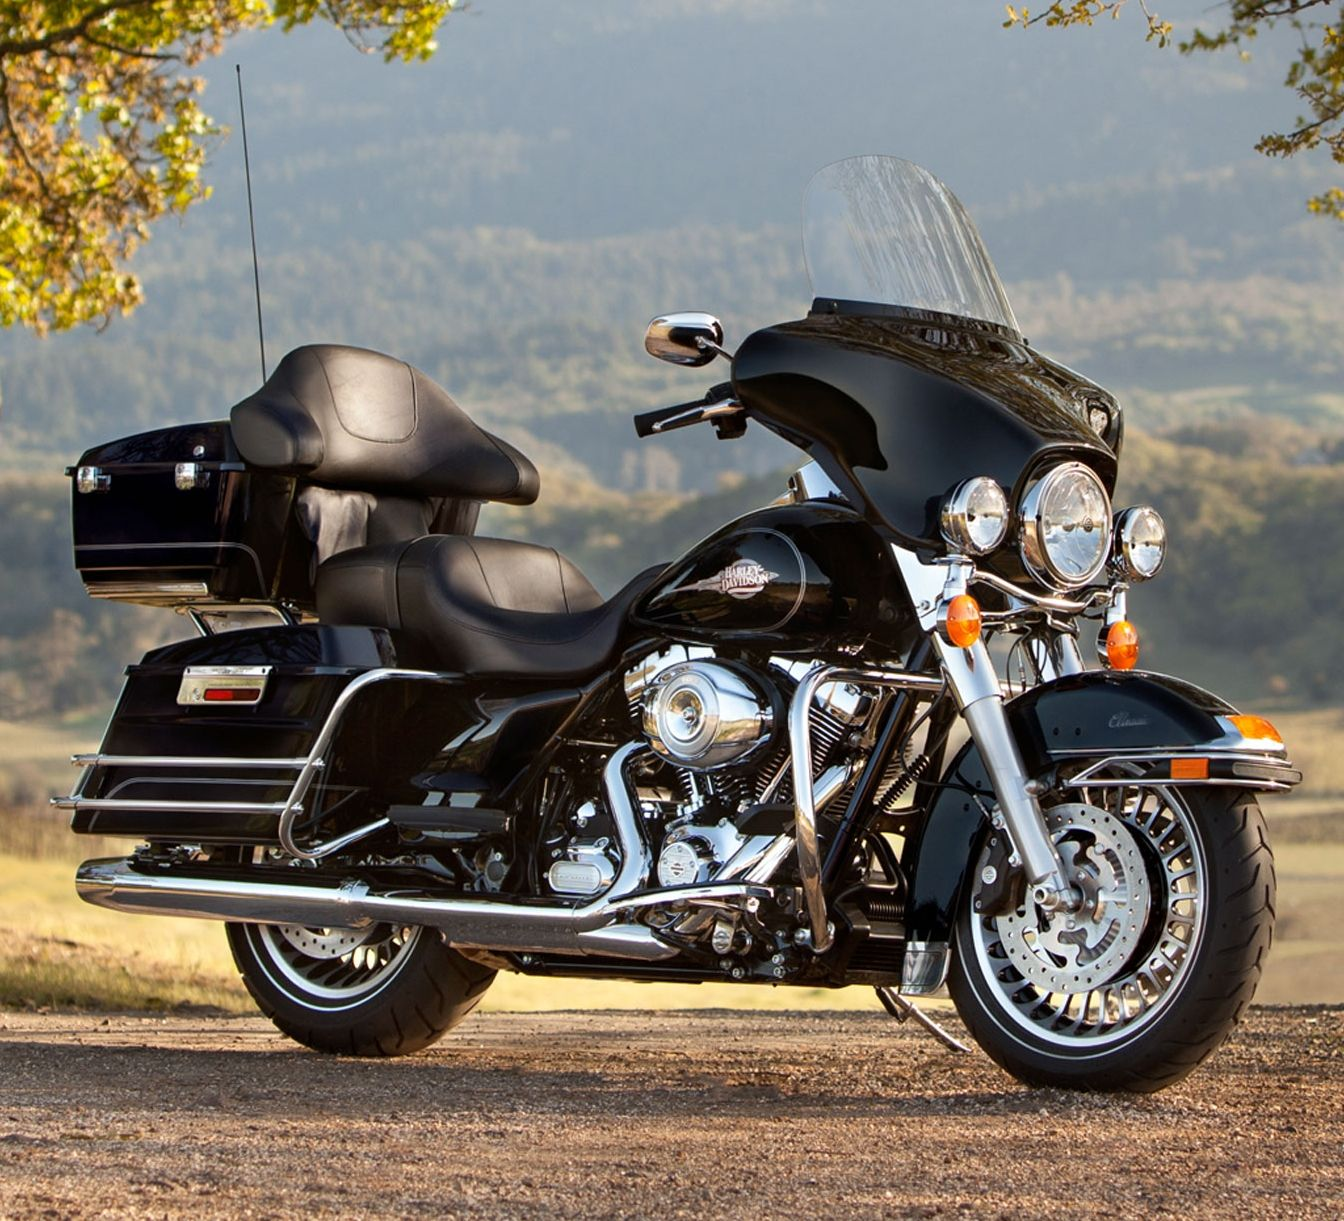 Pretty Excited To Be Picking The Bike Up From Storage Tomorrow Looking Forward To Su Harley Davidson Electra Glide Touring Motorcycles Harley Davidson Touring [ 1221 x 1344 Pixel ]